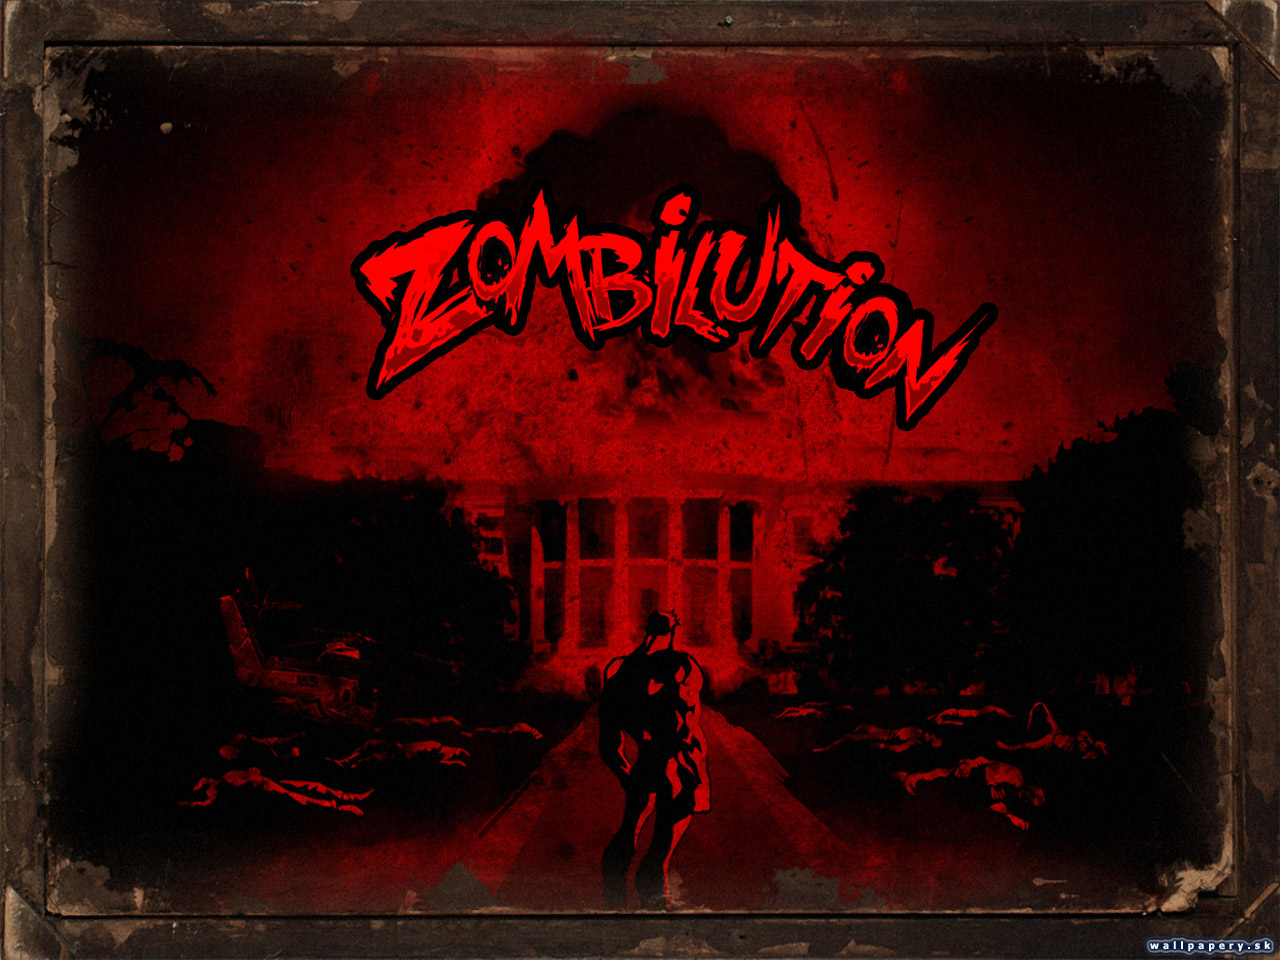 Zombilution - wallpaper 1